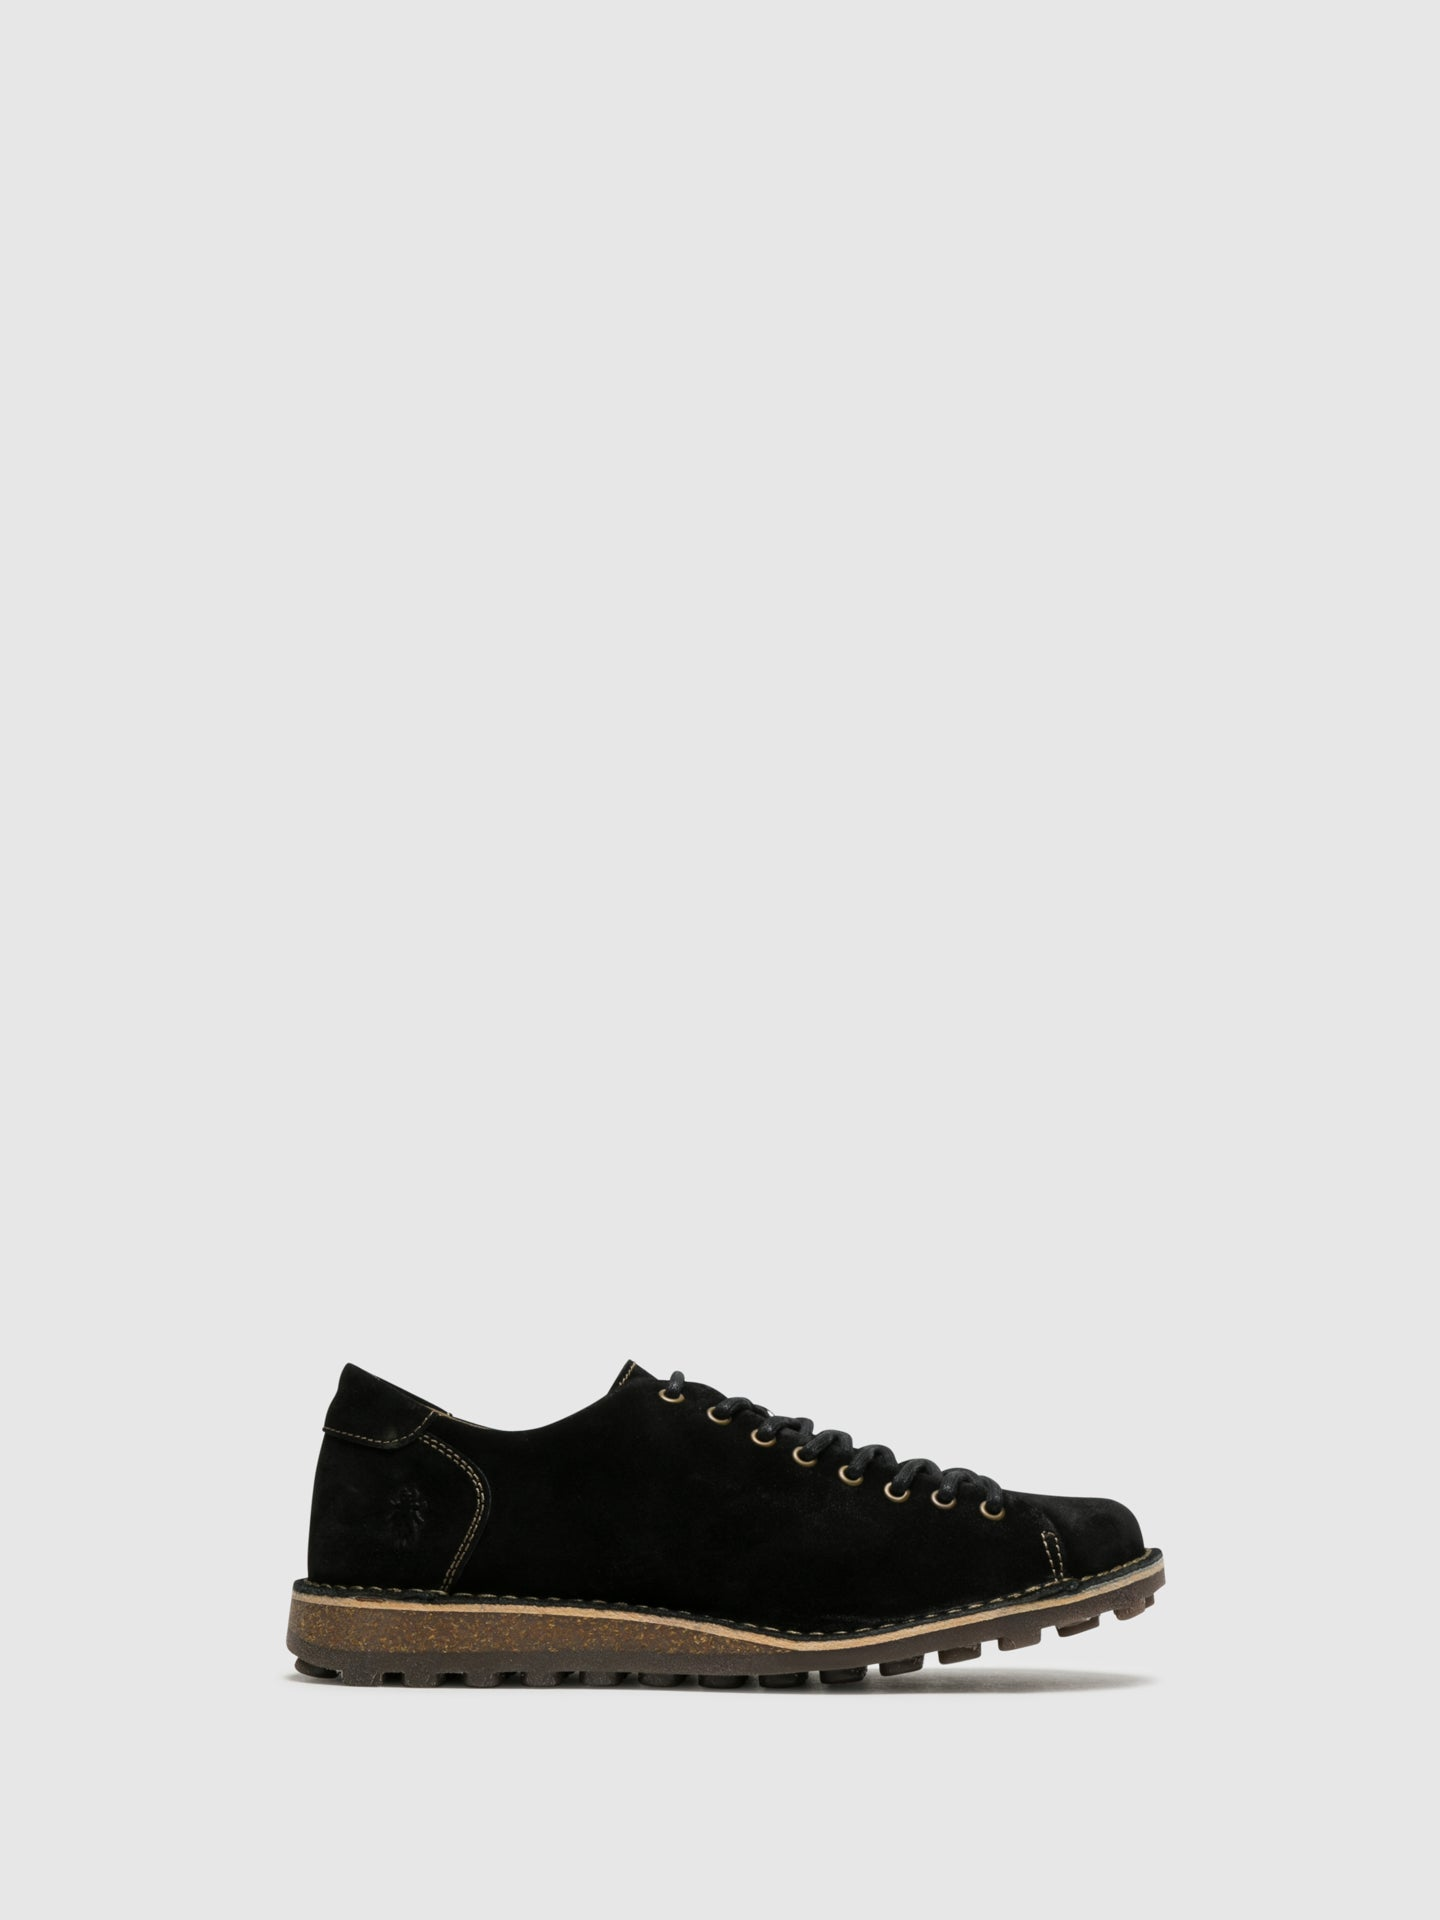 Fly London Zapatos Derby en color Negro